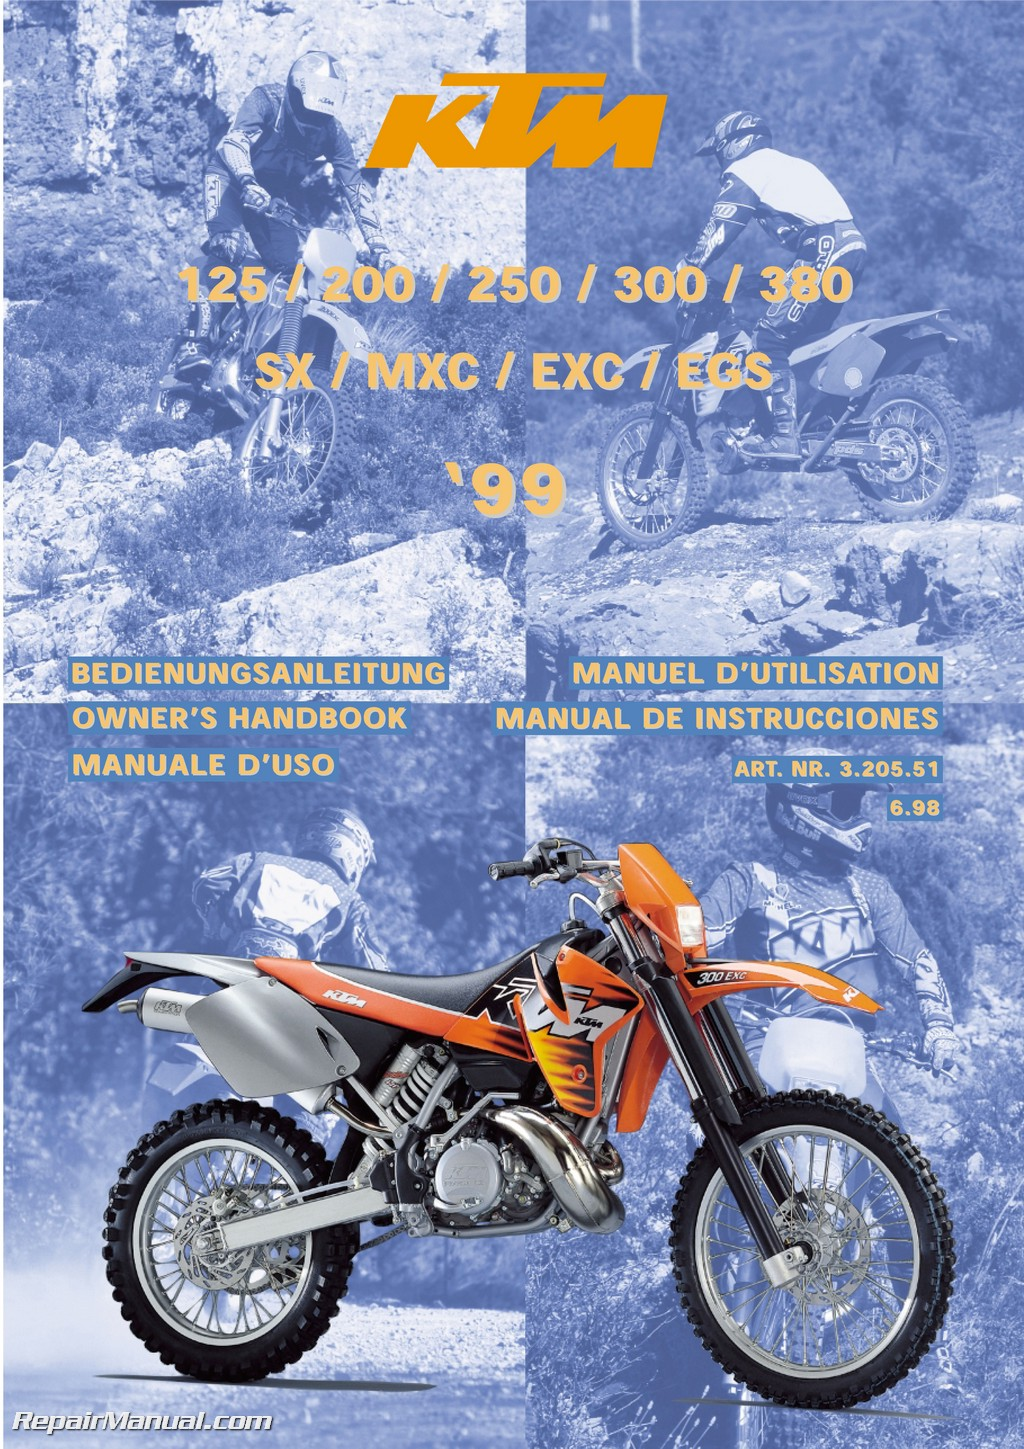 hight resolution of 1999 ktm 125 200 250 300 380 sx mxc exc egs motorcycle owners manual